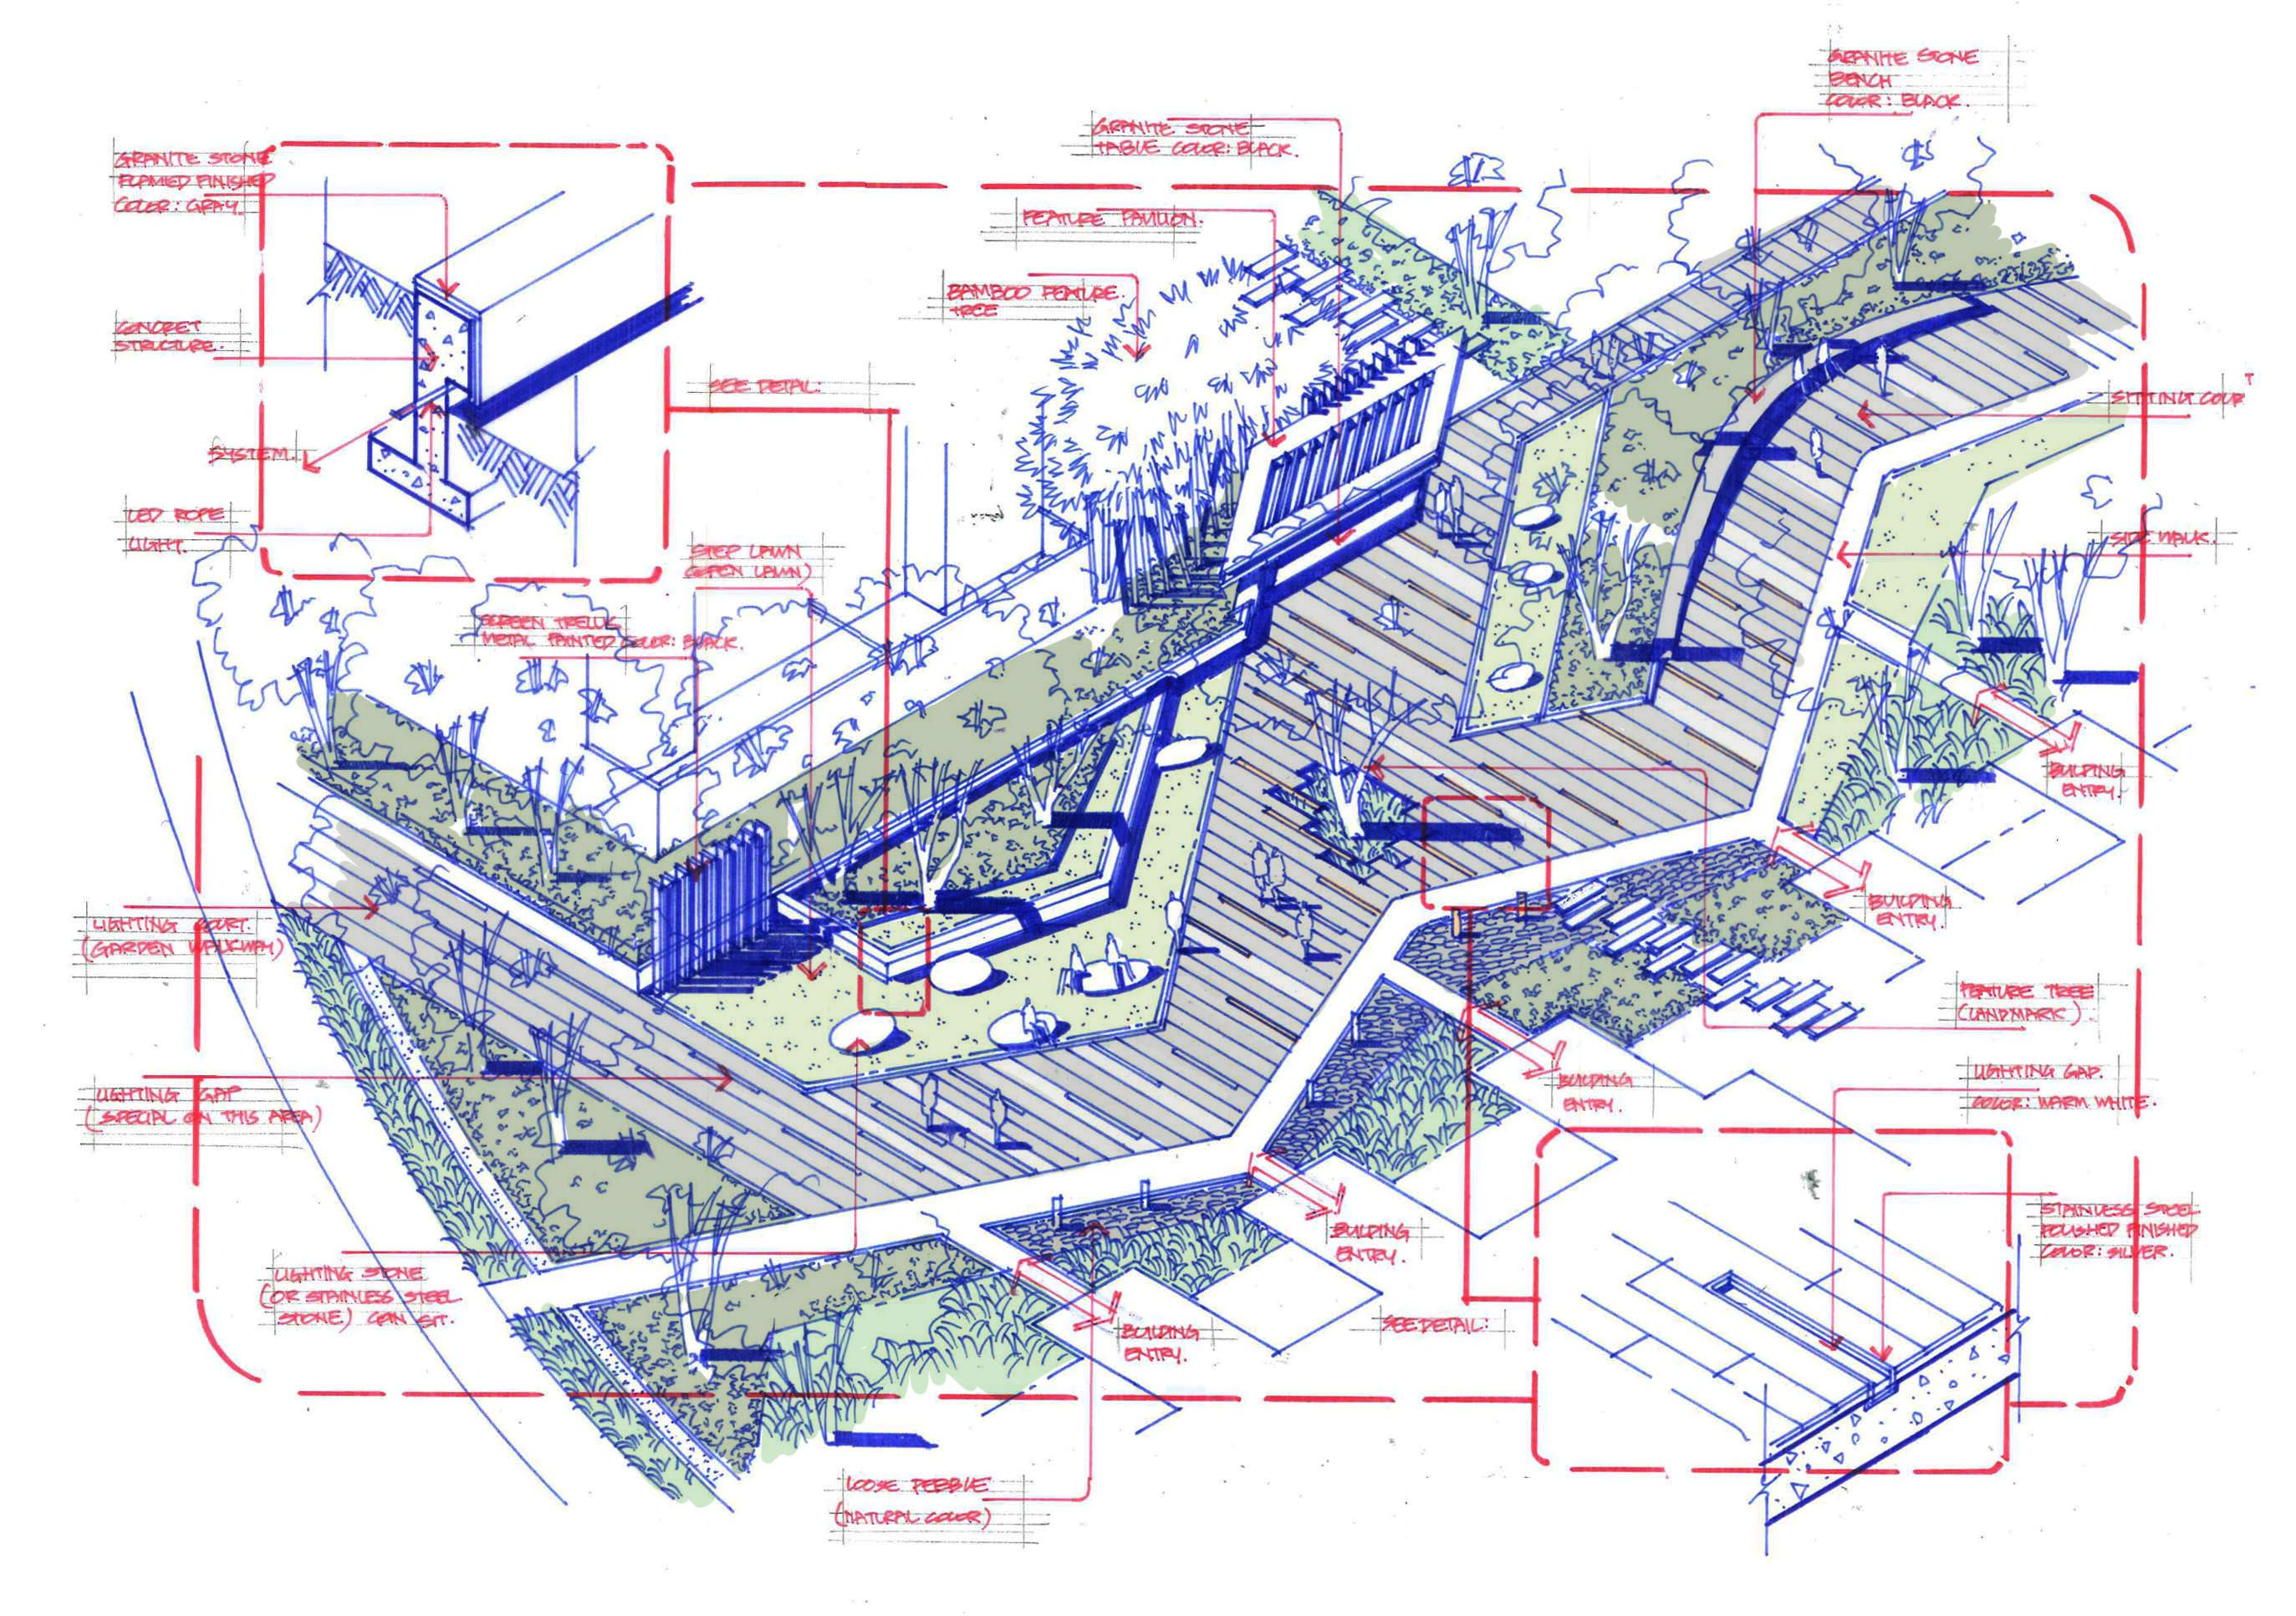 Pin by s1995 on pinterest landscaping sketches and for Landscape and garden design sketchbooks